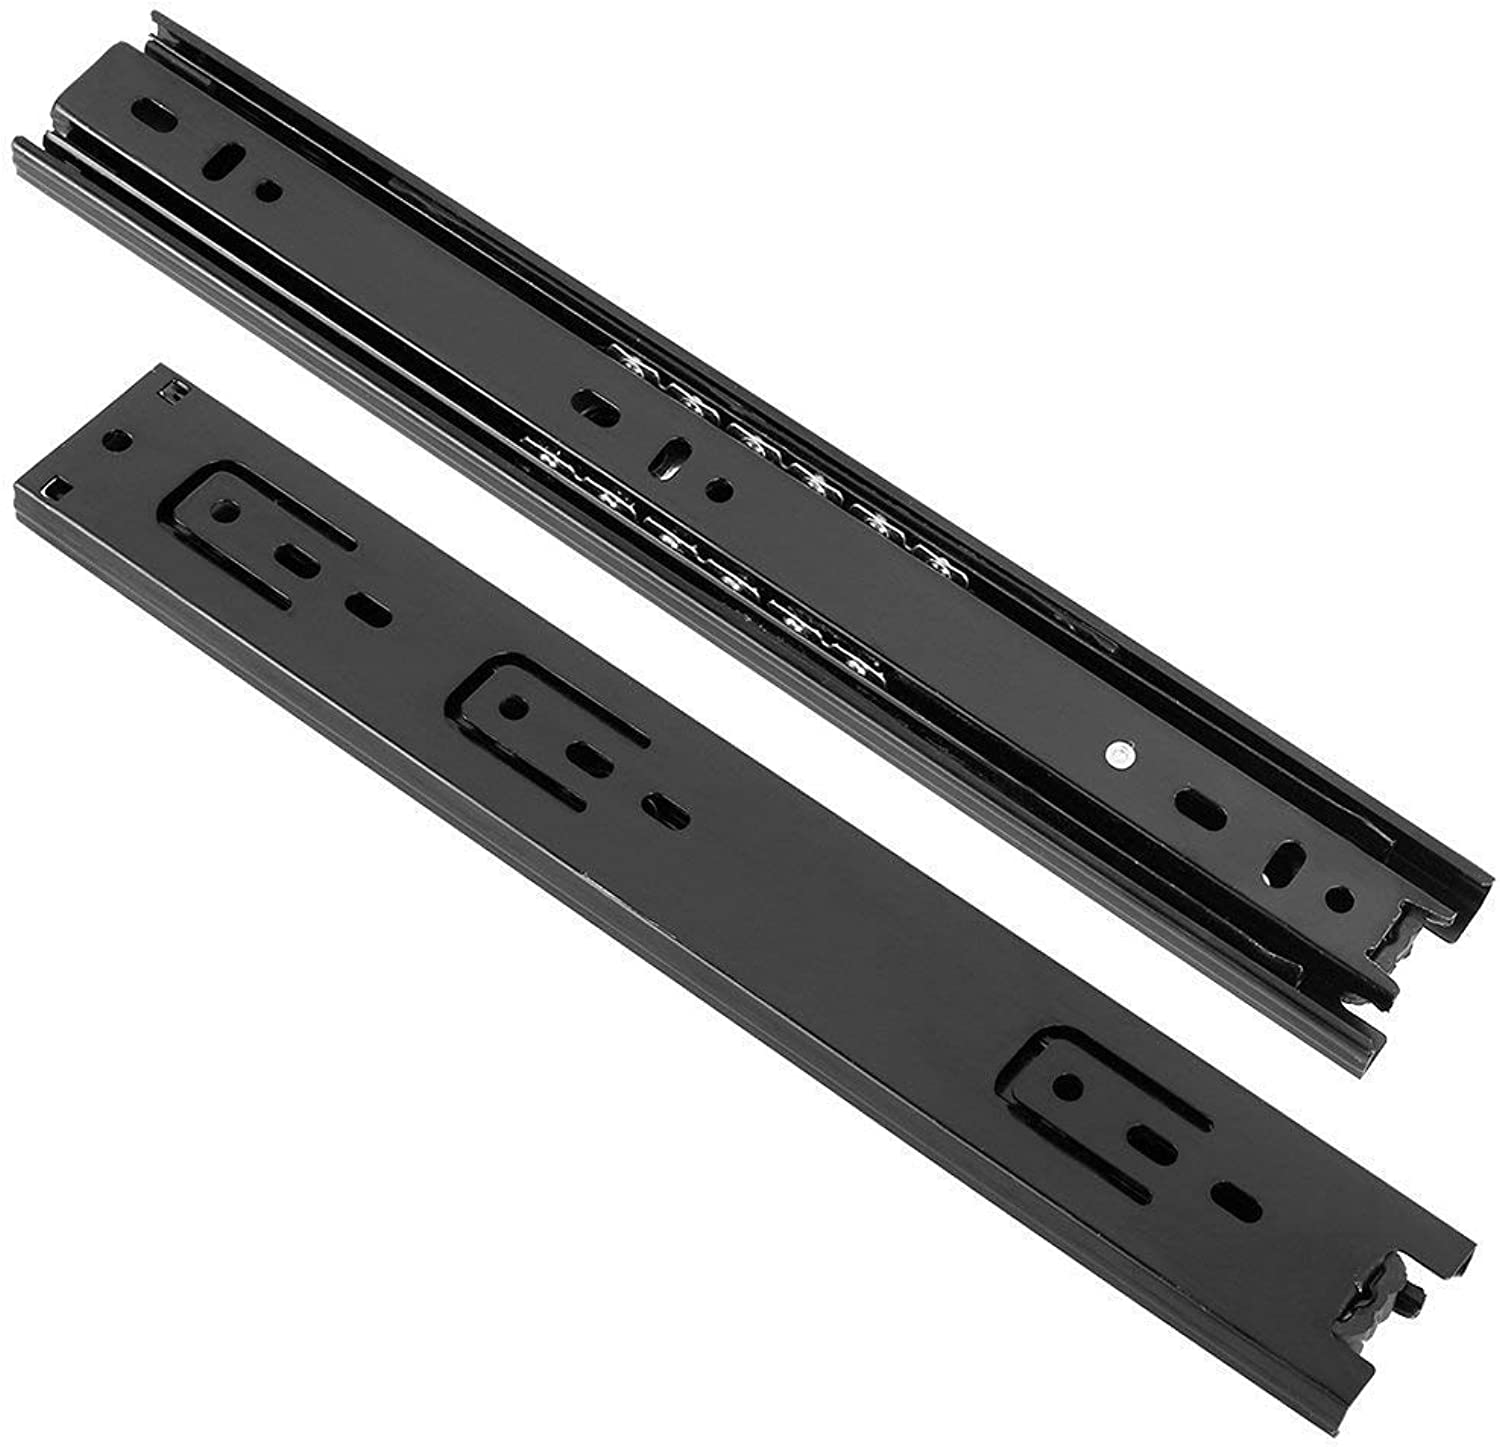 Ball Bearing Side Mount Drawer Slides, Full Extension, 10.8-inch, 100lbs Capacity, 40mm Wide, Black, 1 Pair